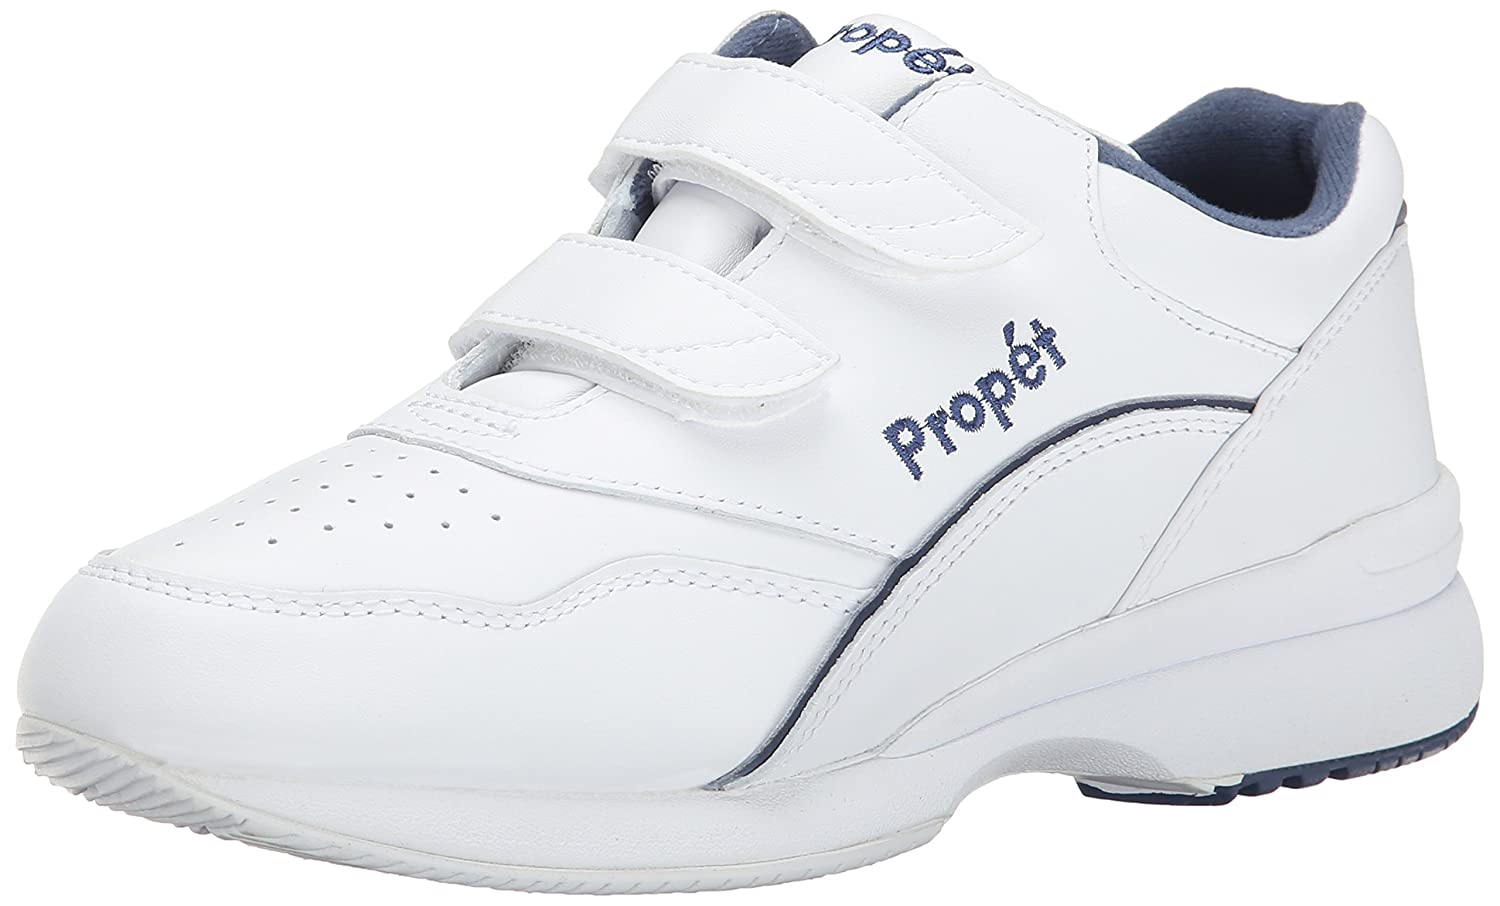 Propet Women's Tour Walker Strap Sneaker B00AO3RCX6 6 N US|White/Blue